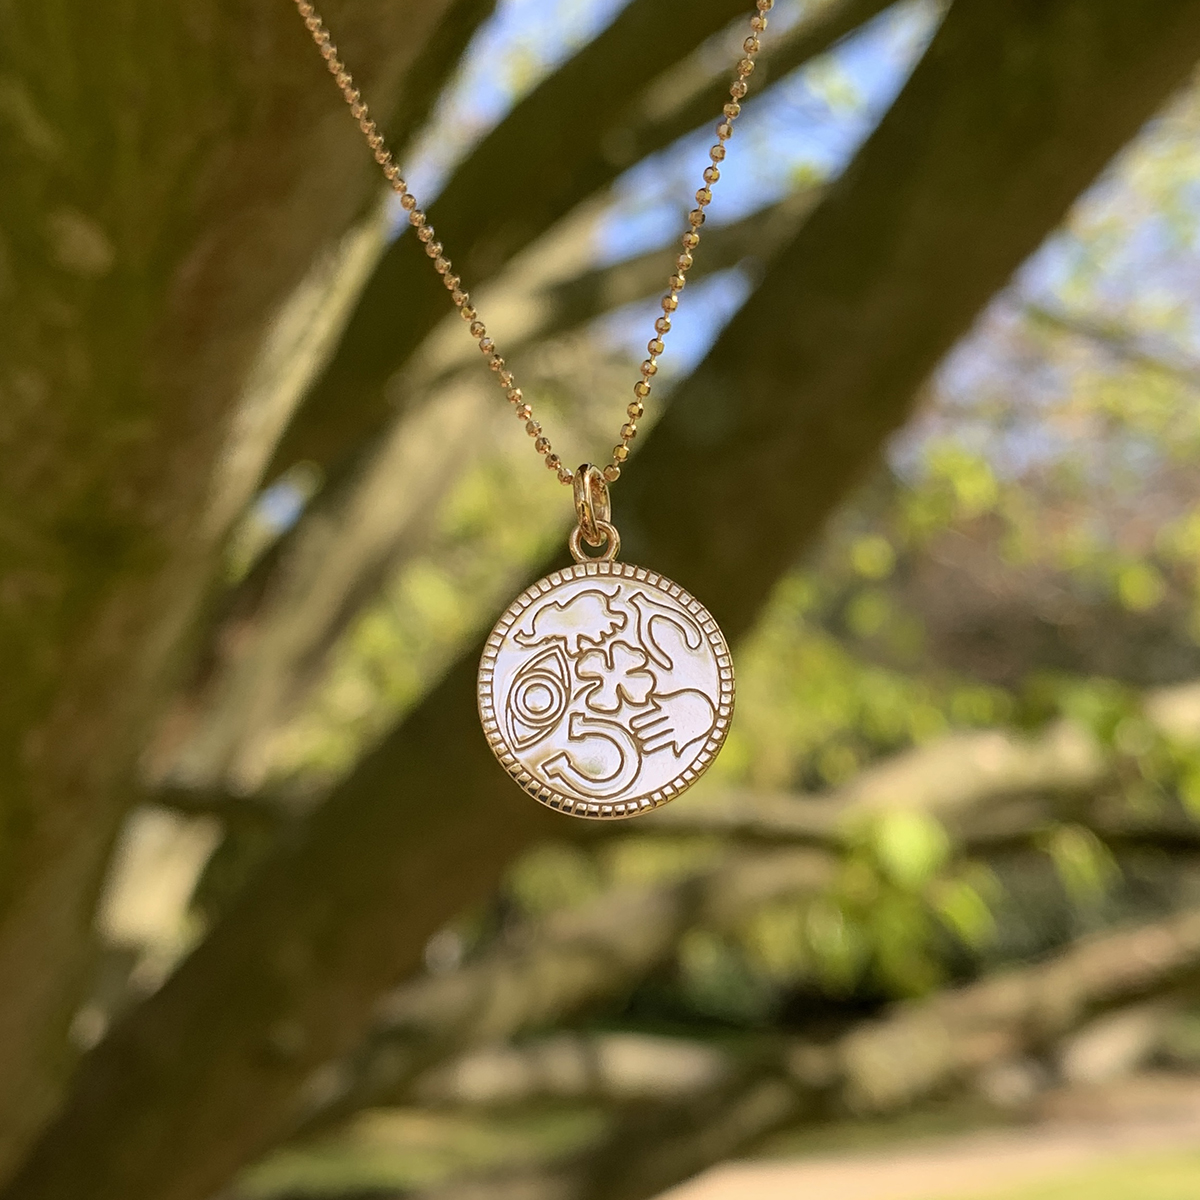 Lucky Rose Gold Charm Necklace Photoshoot